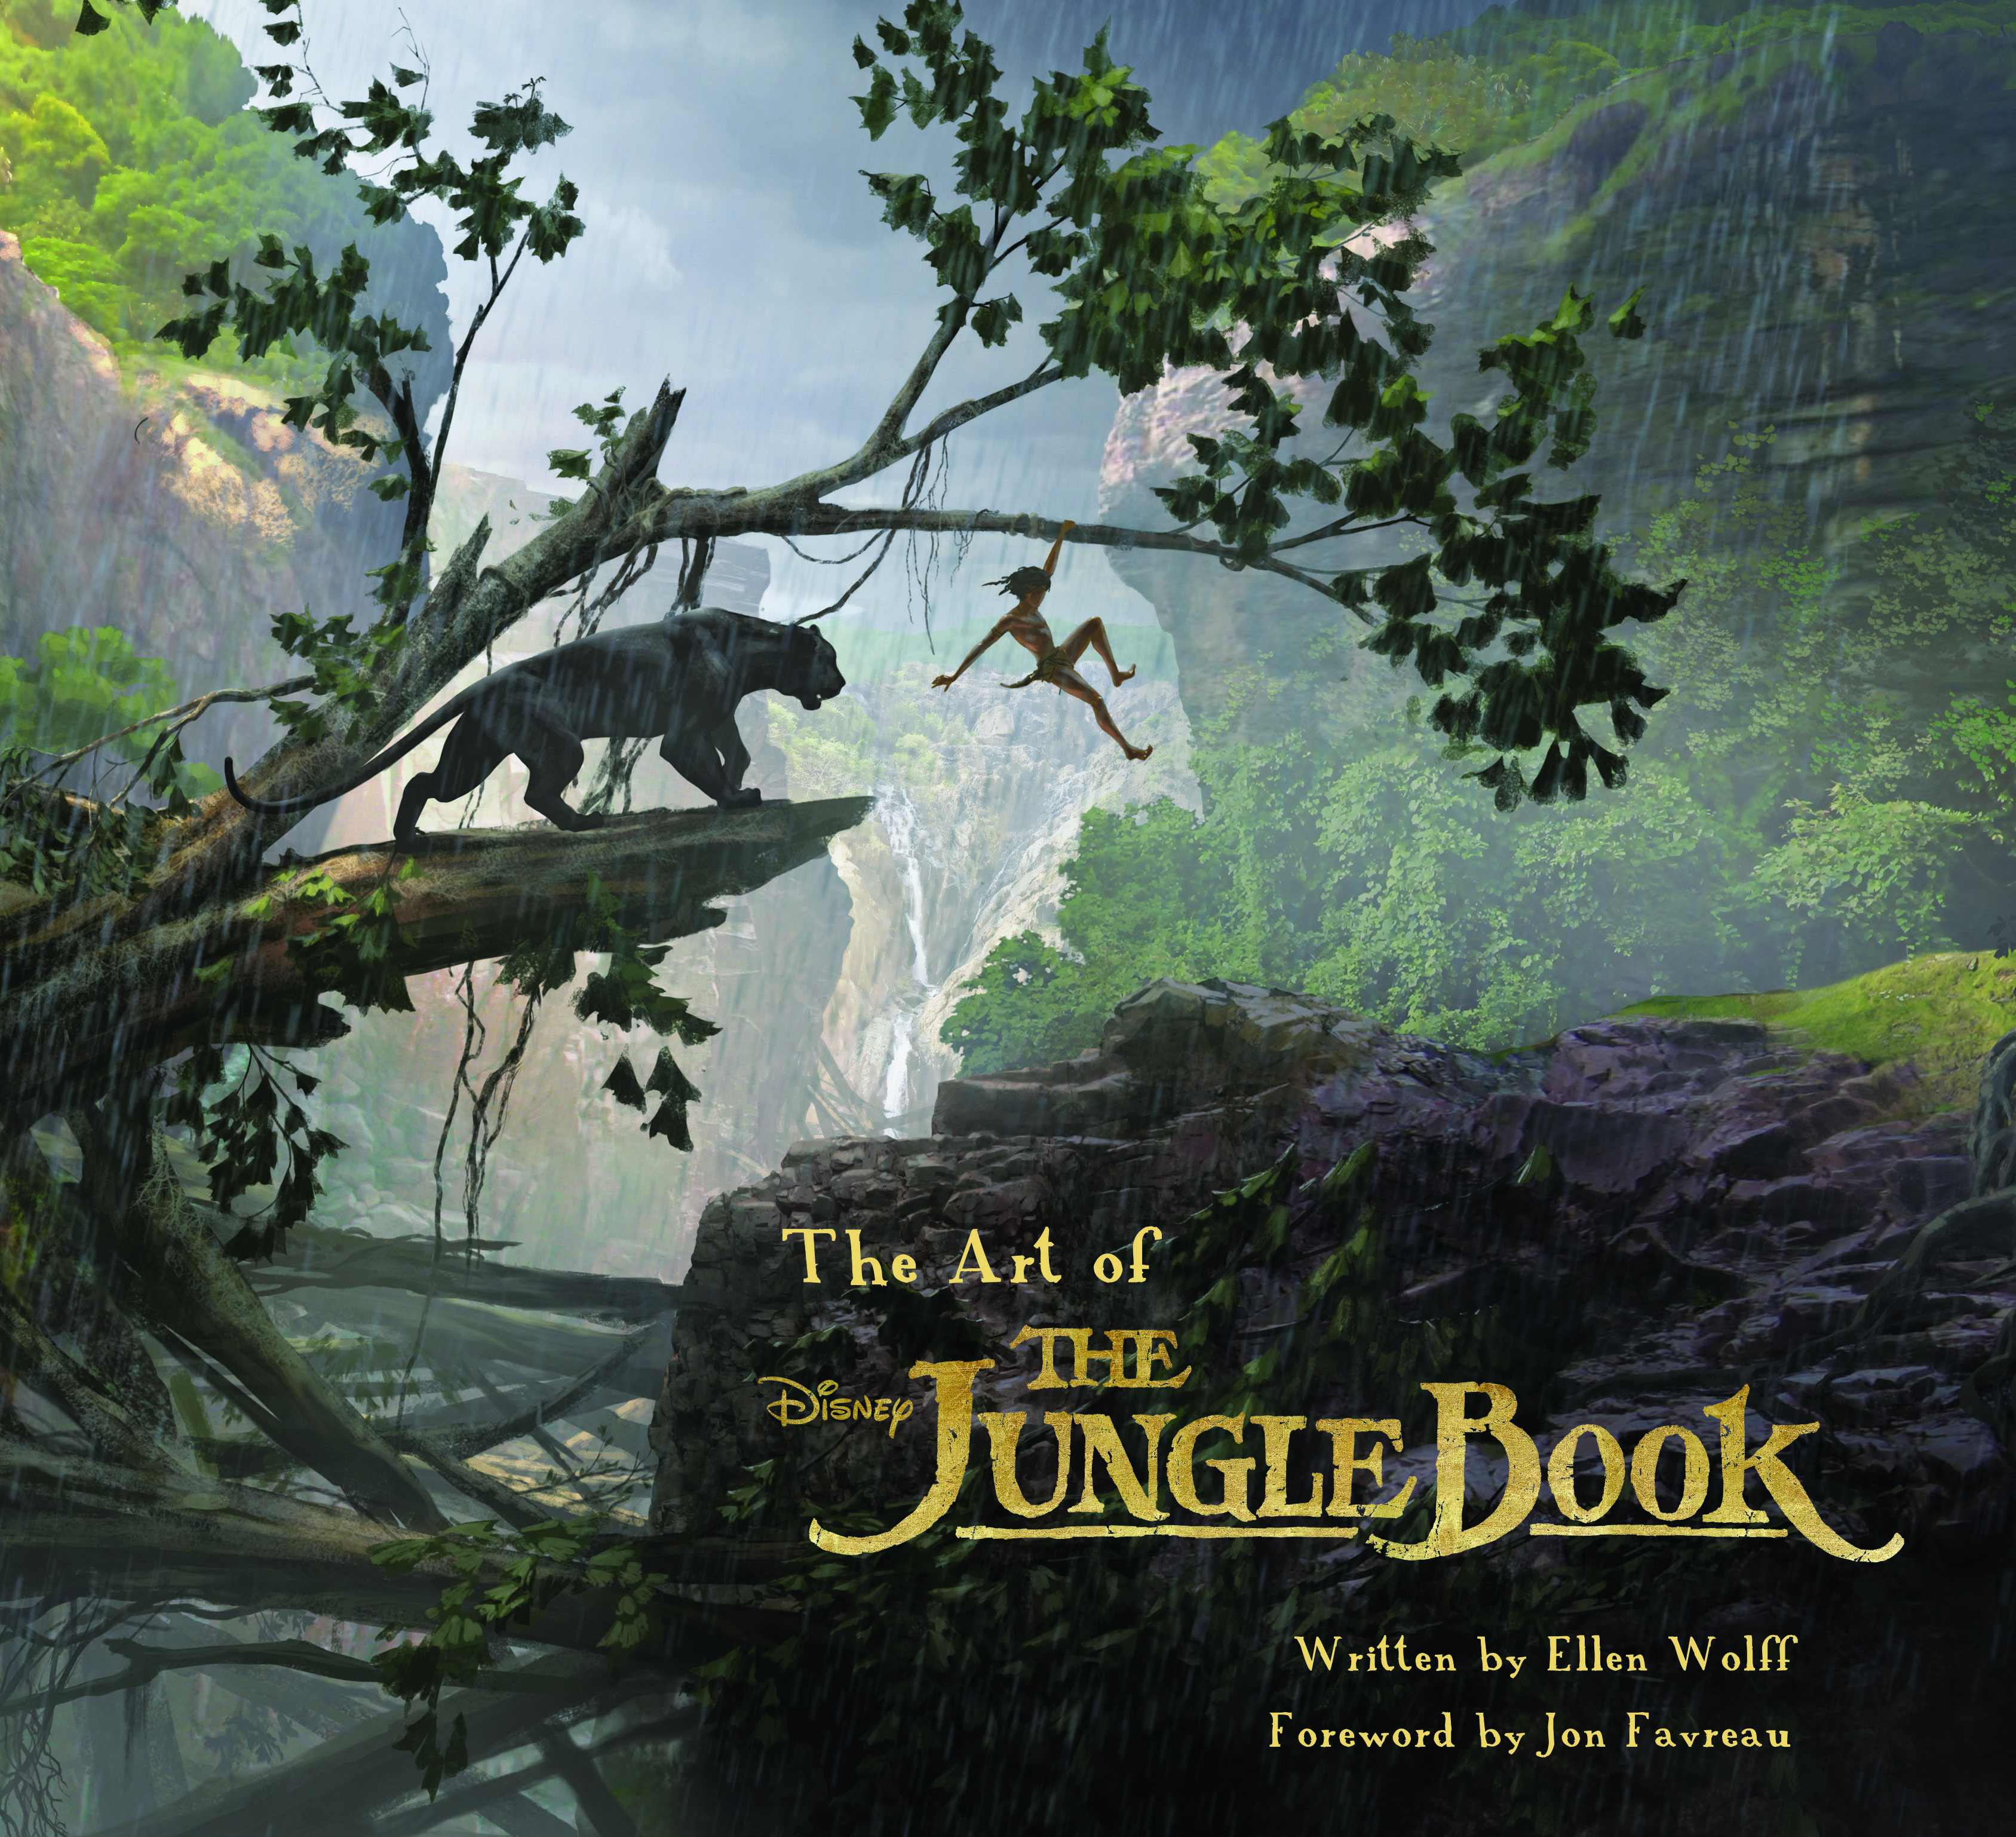 06-the-art-of-the-jungle-book-fiktion-og-kultur-plusbog-dk-film-bog-junglebogen